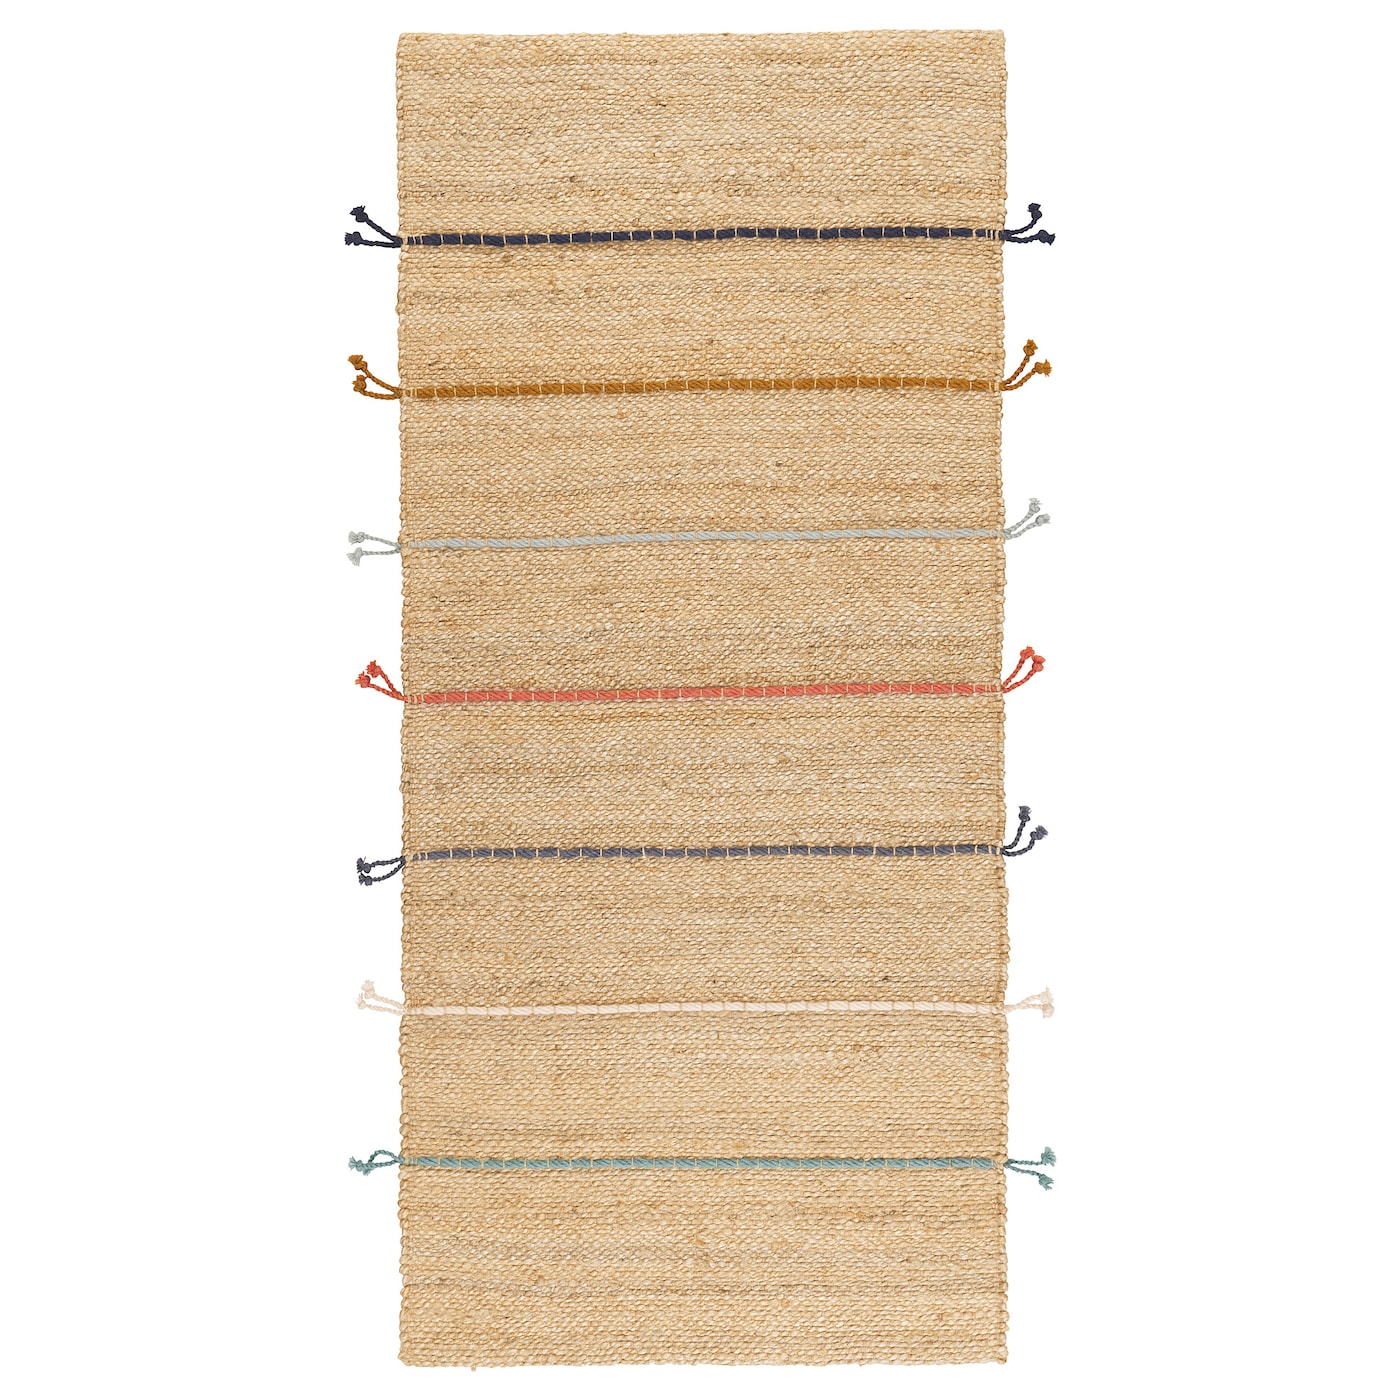 IKEA RAKLEV rug, flatwoven Jute is a durable and recyclable material with natural colour variations.